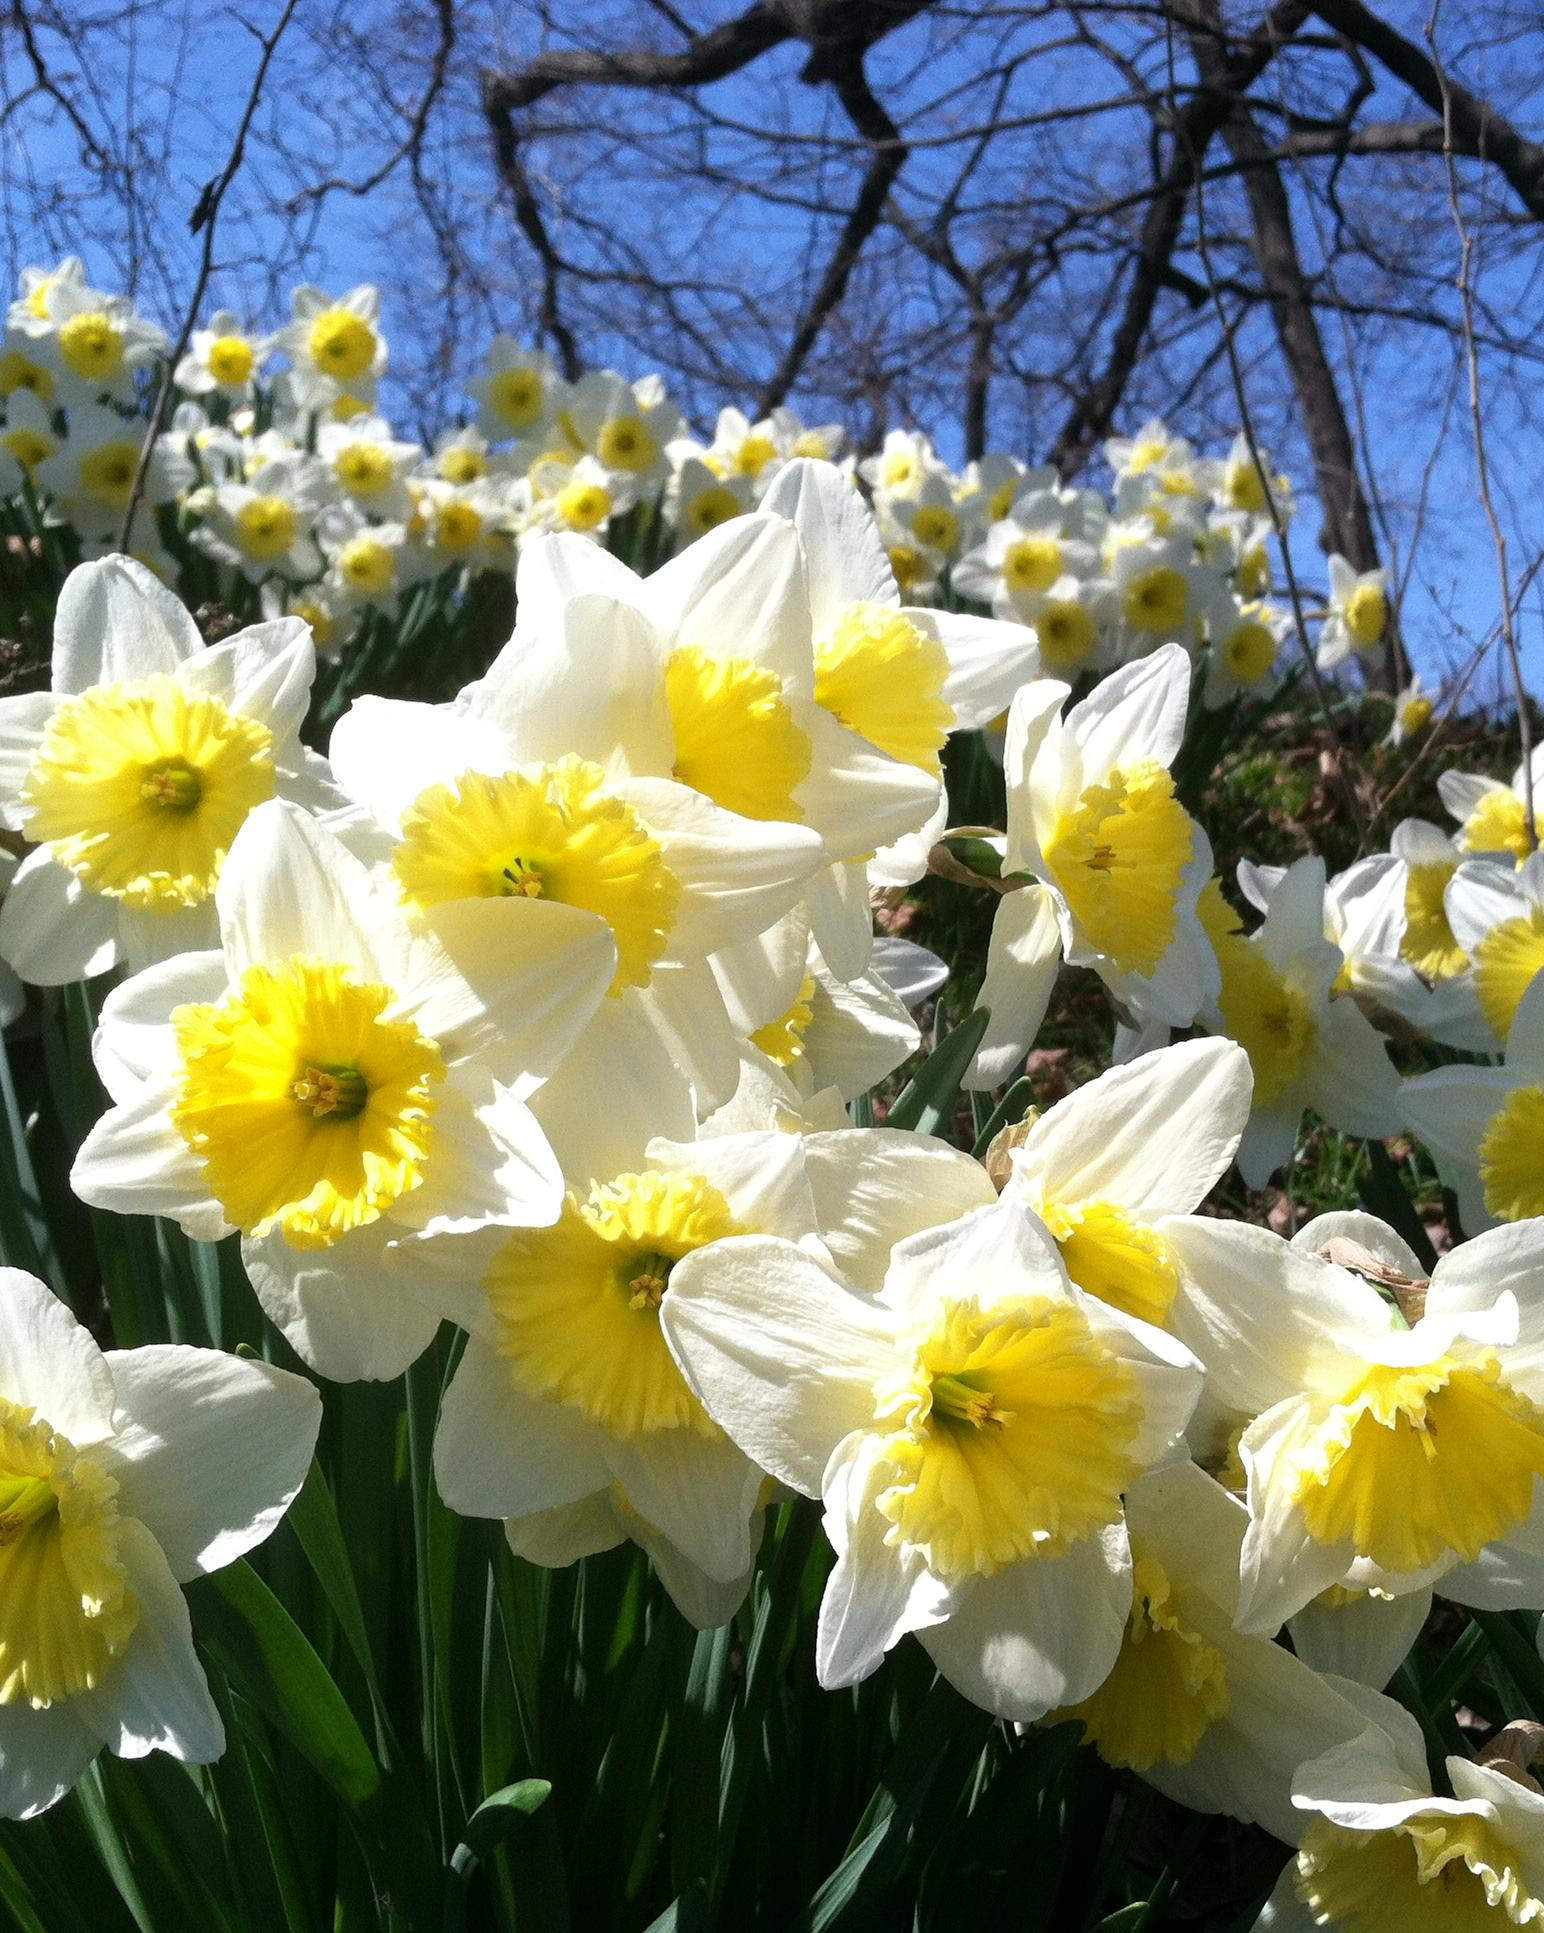 Garden of White and Yellow Daffodils